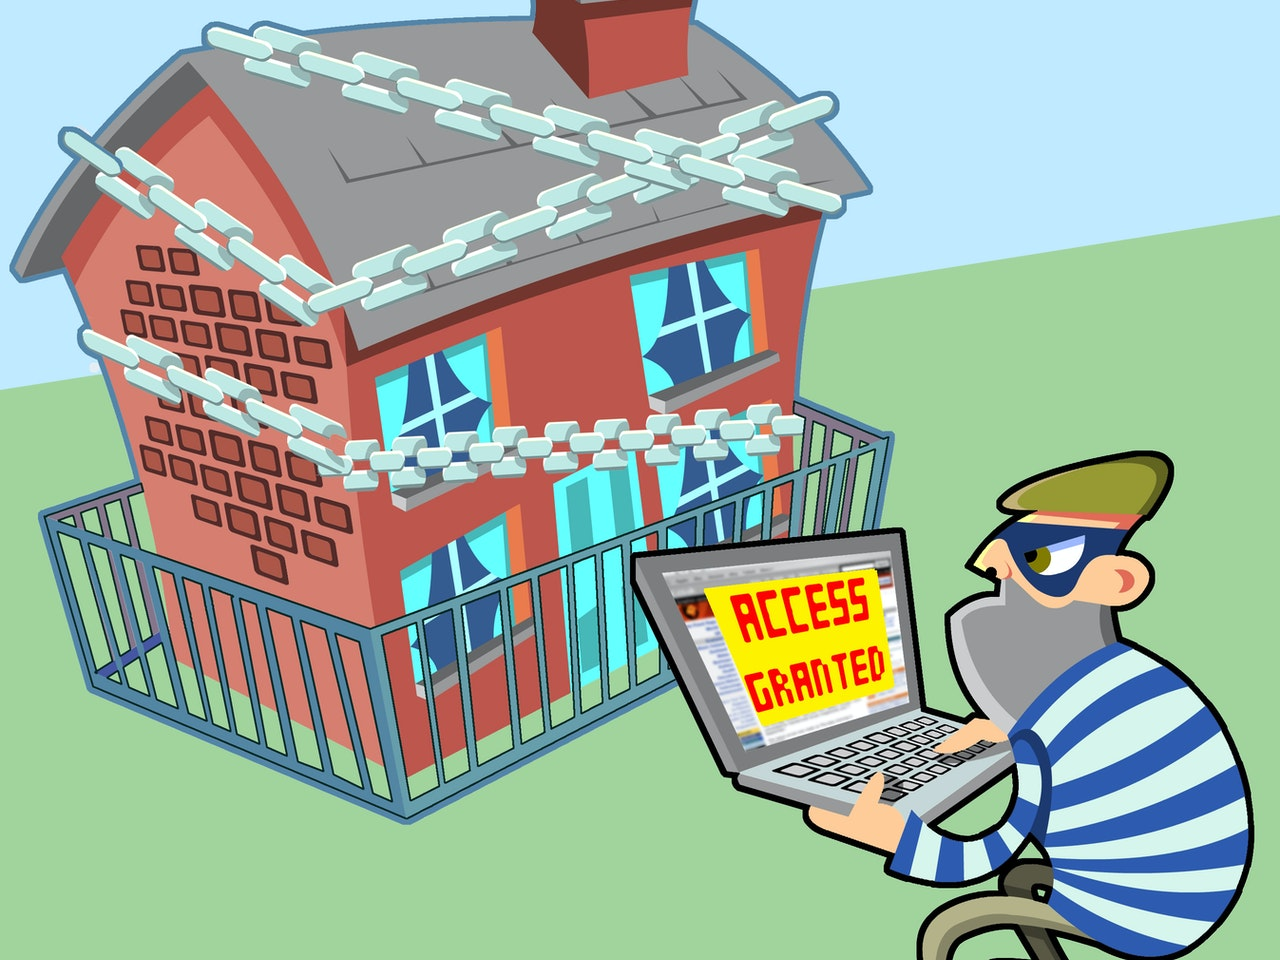 funny happy humorous comical colourful graphic cartoon  Security burglar robber robbery  internet online fraud chains house home